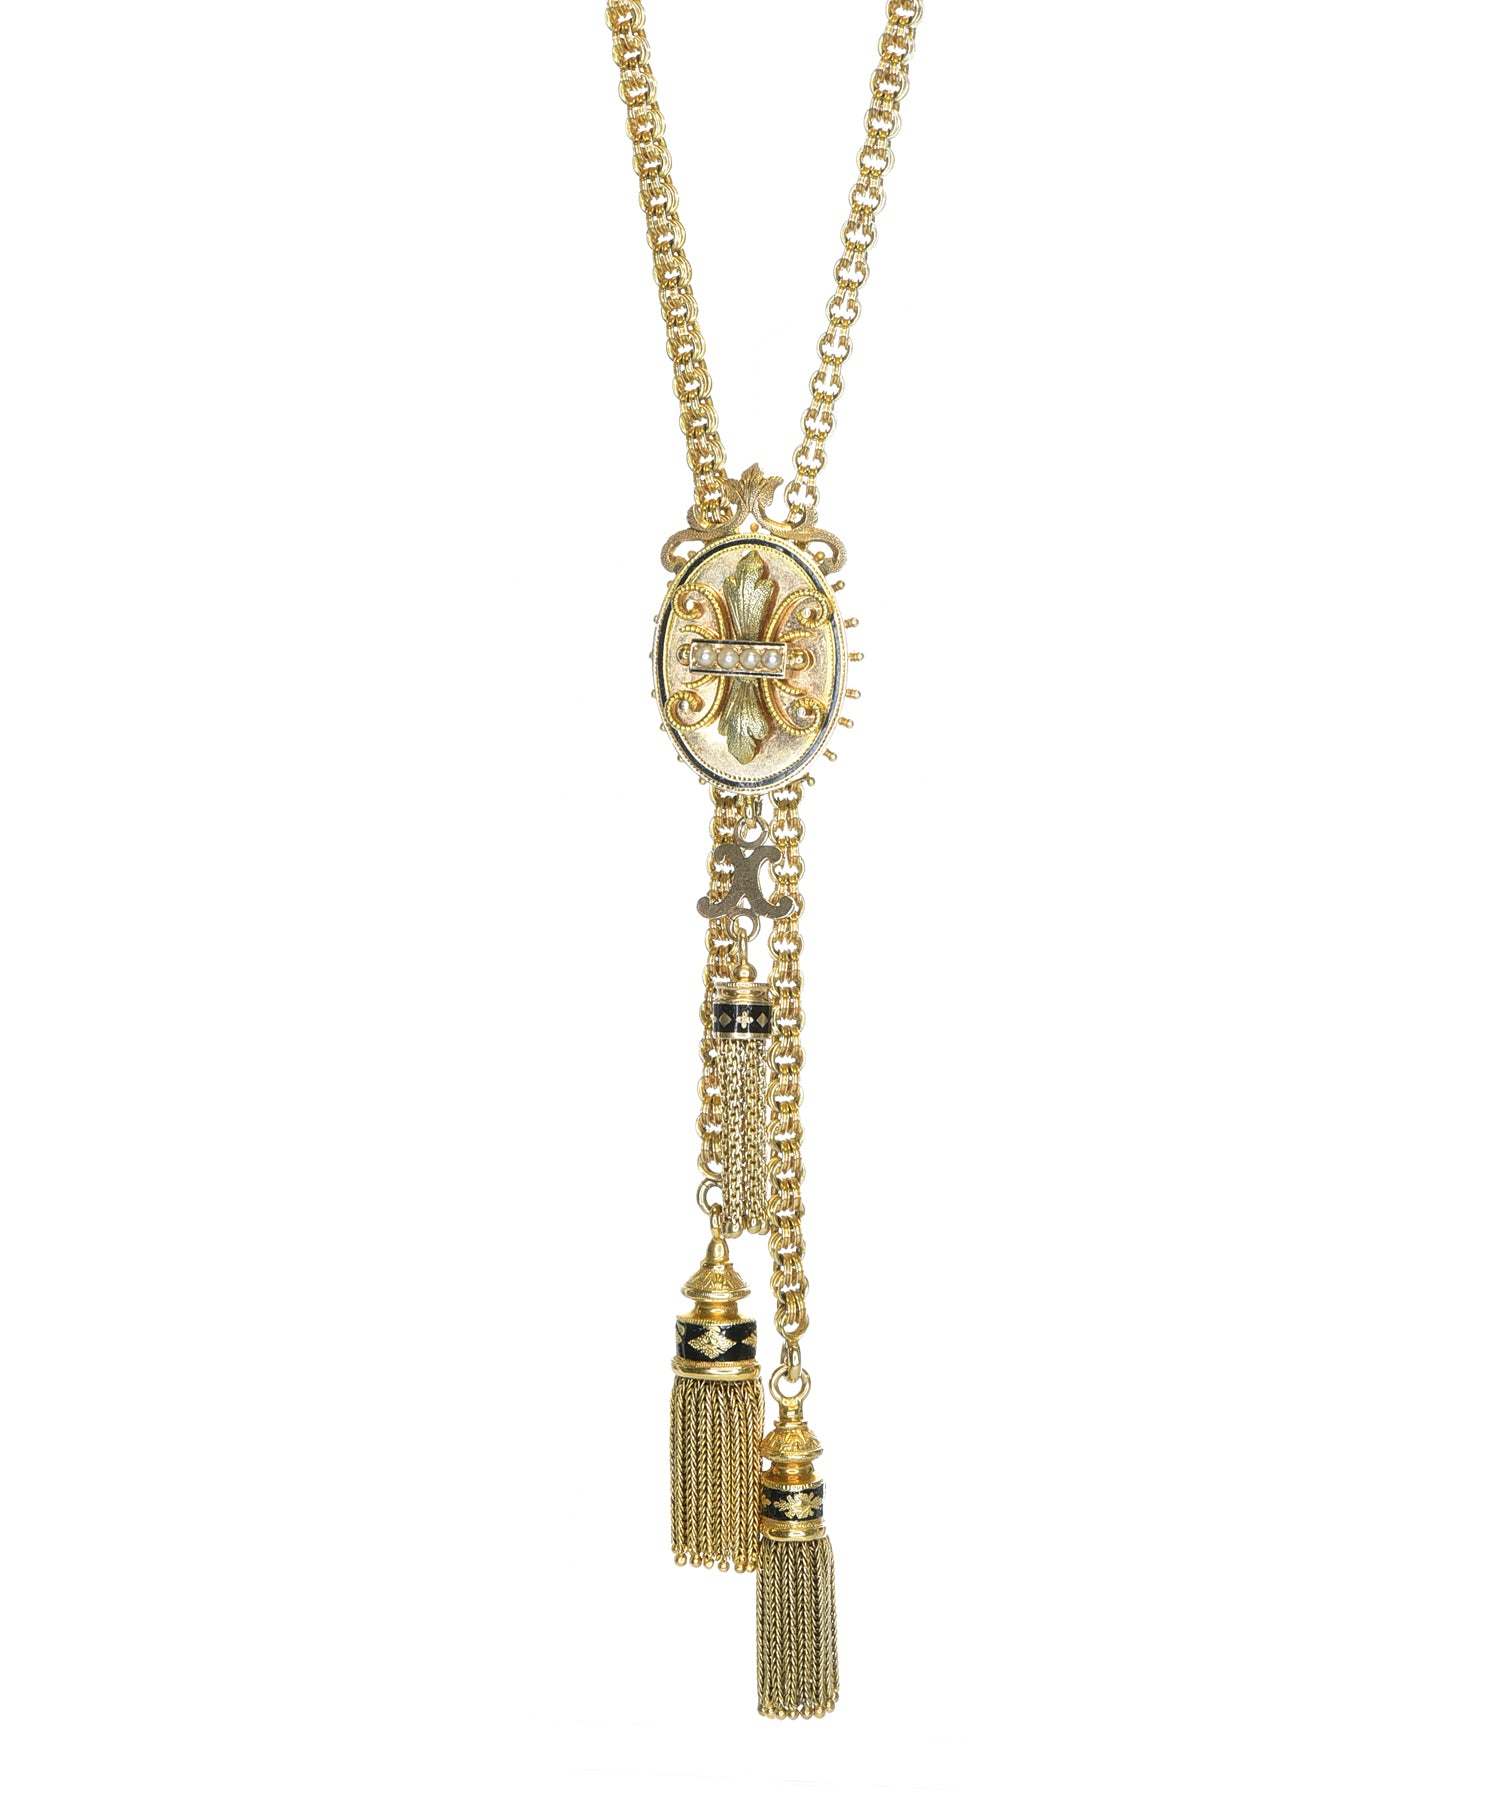 Antique slide necklace with three tassels